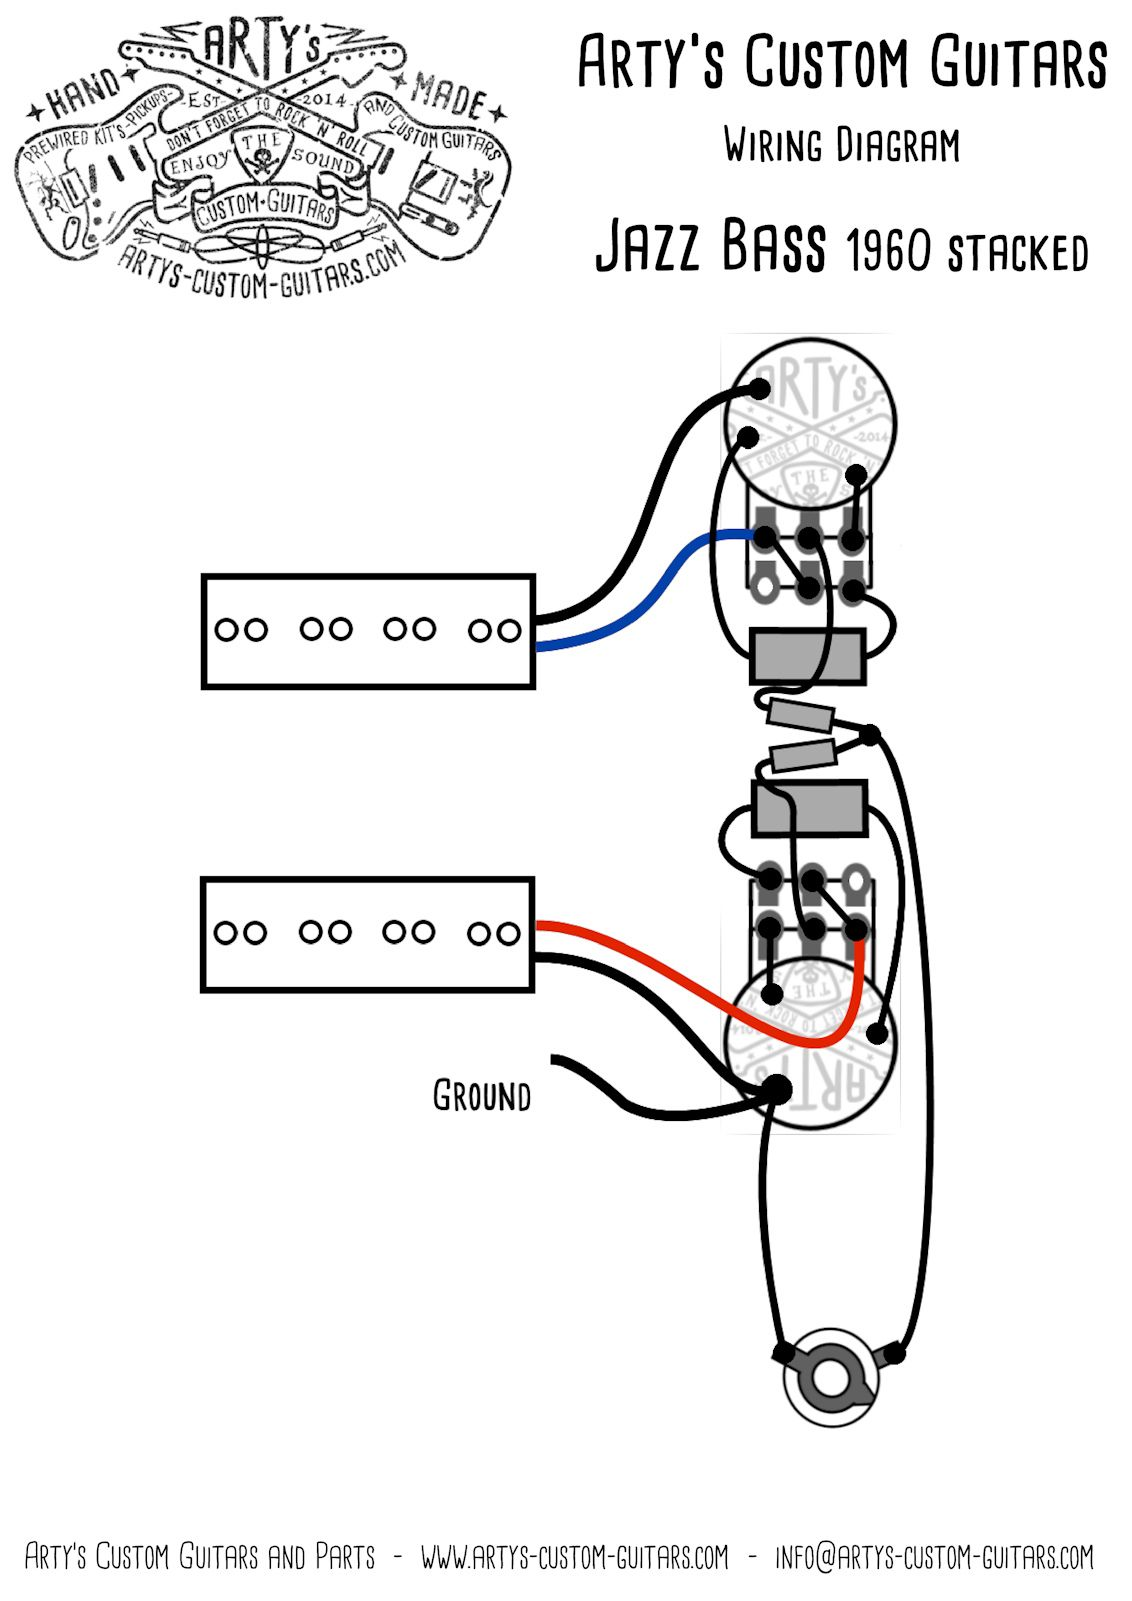 medium resolution of arty s custom guitars vintage pre wired prewired kit wiring assembly harness arty jazz bass 1960 1962 stacked pots 3 hole j bass